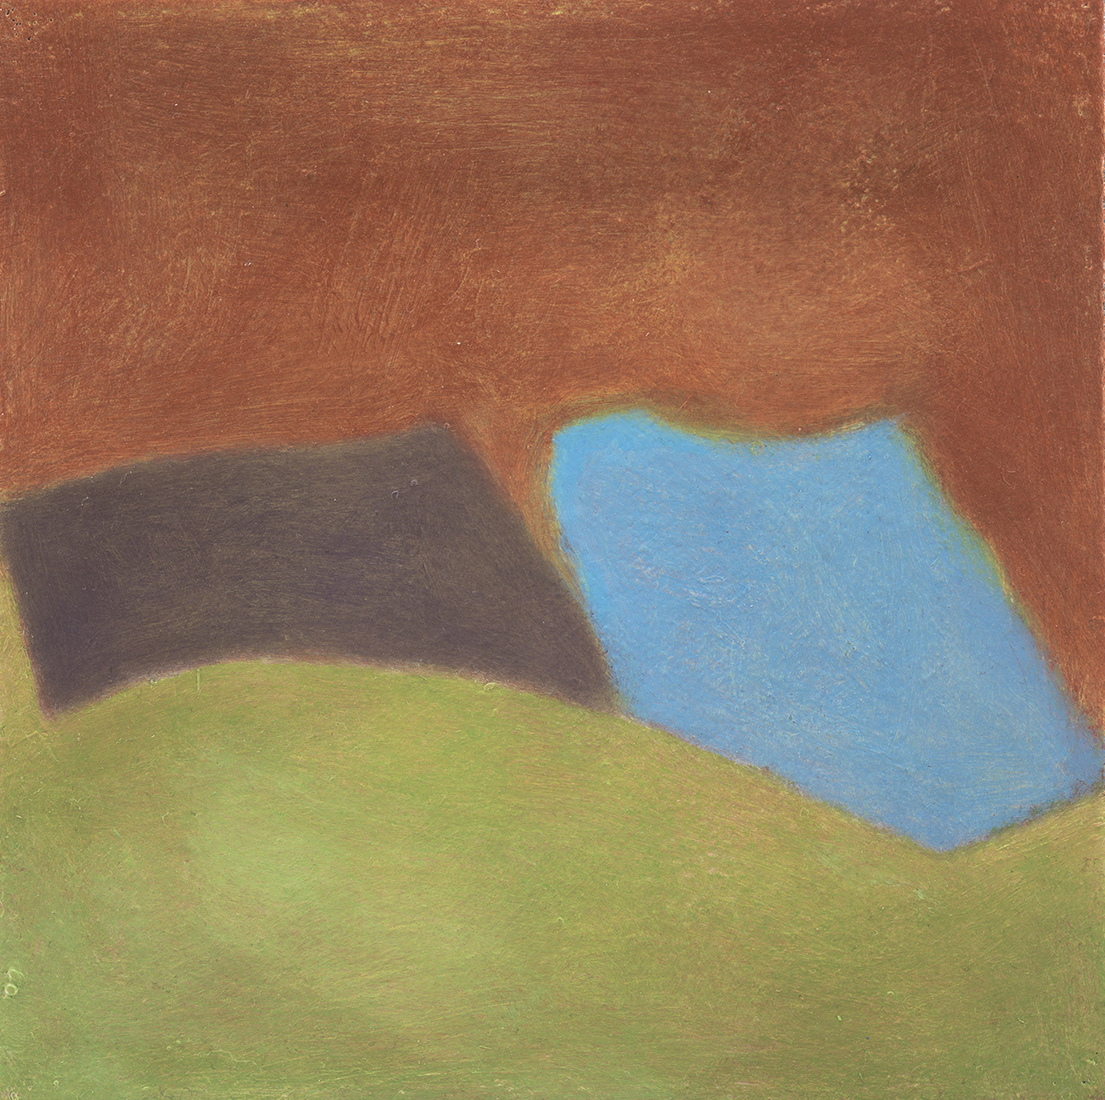 abstract paintings No. 4